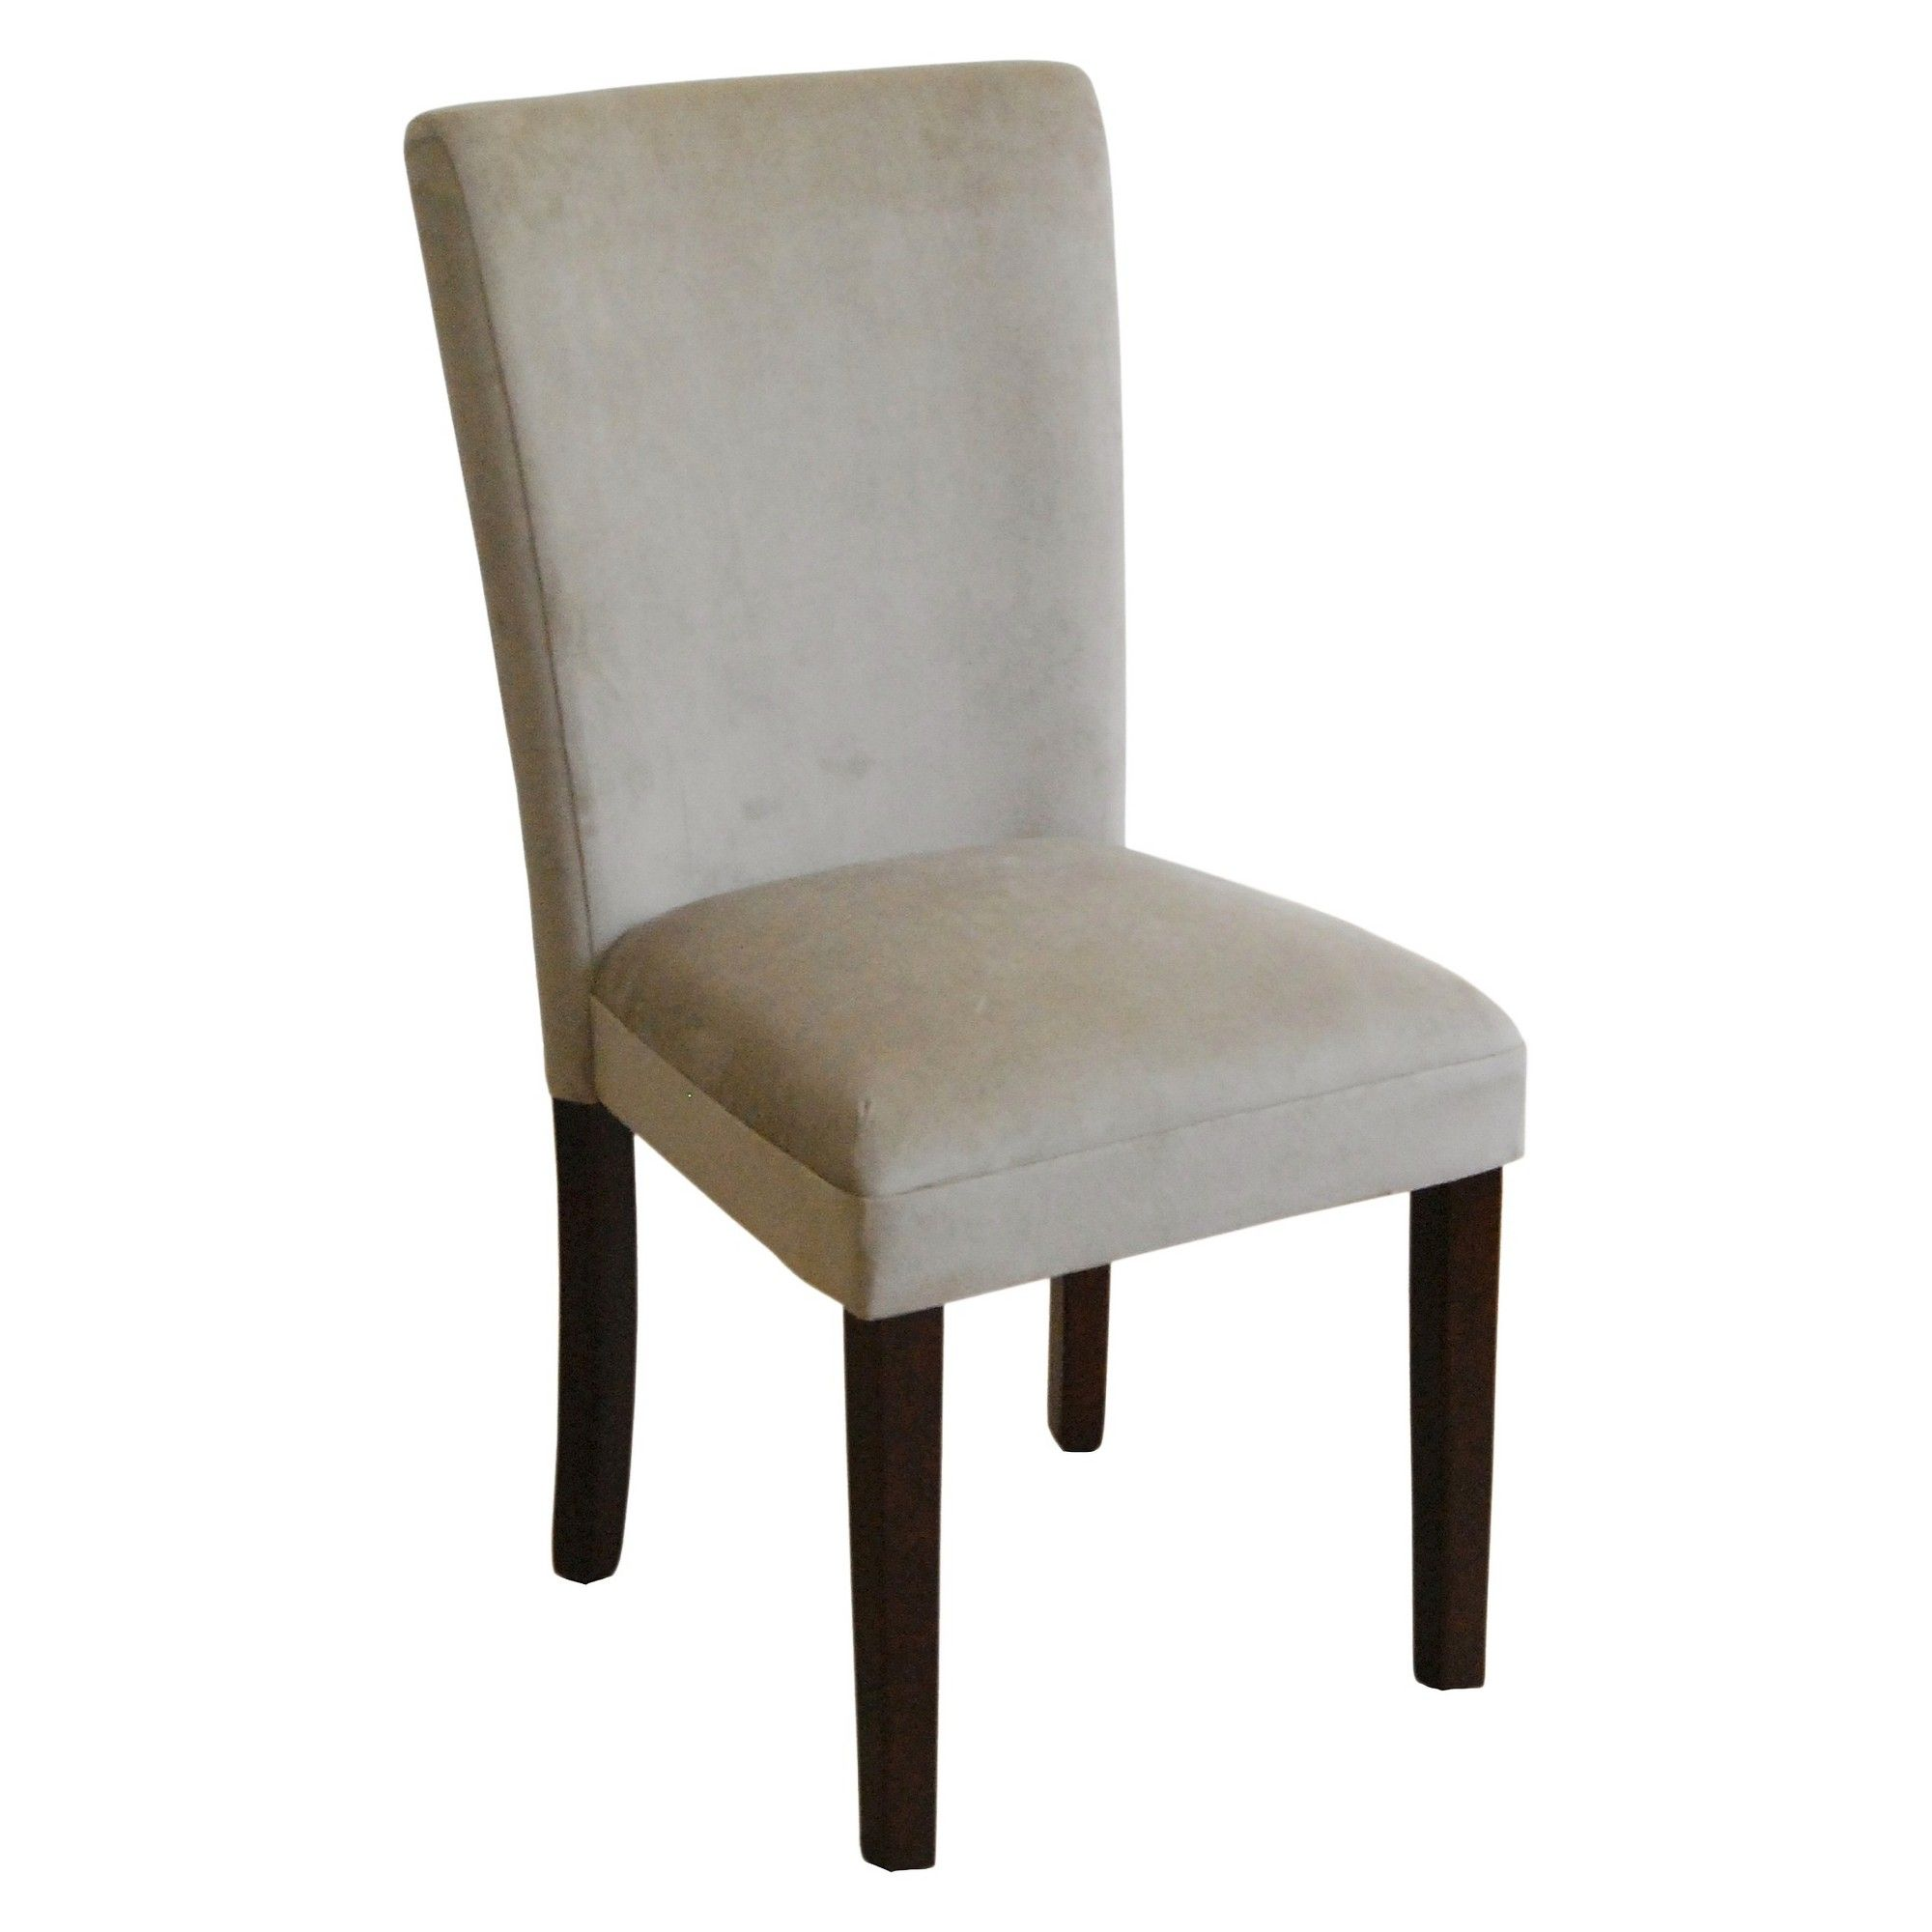 Parsons Chair with MidTone Wood Tan (Set of 2